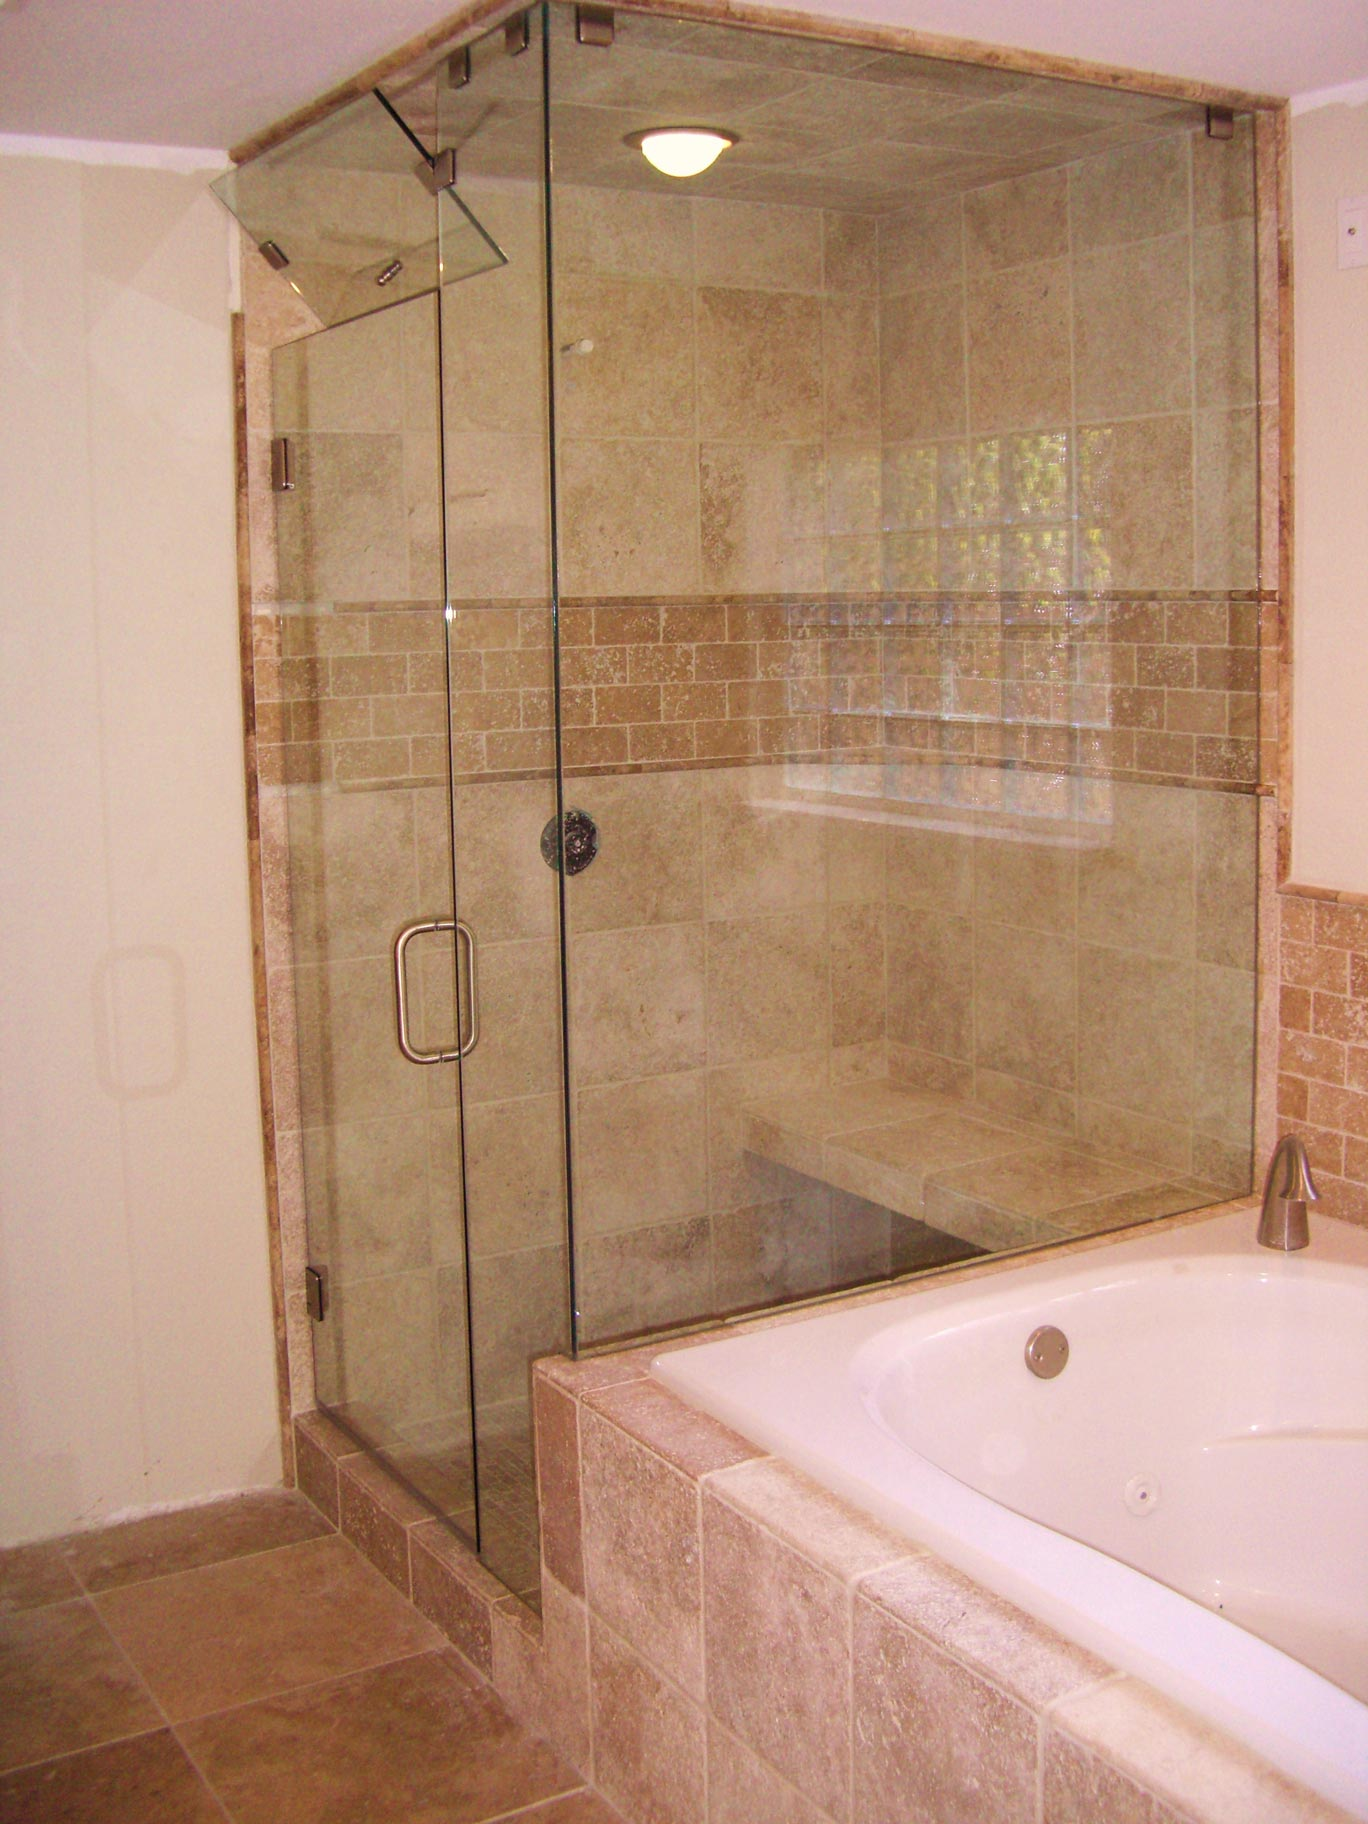 Gallery - Category: Steam Showers - Image: Steam Showers 16